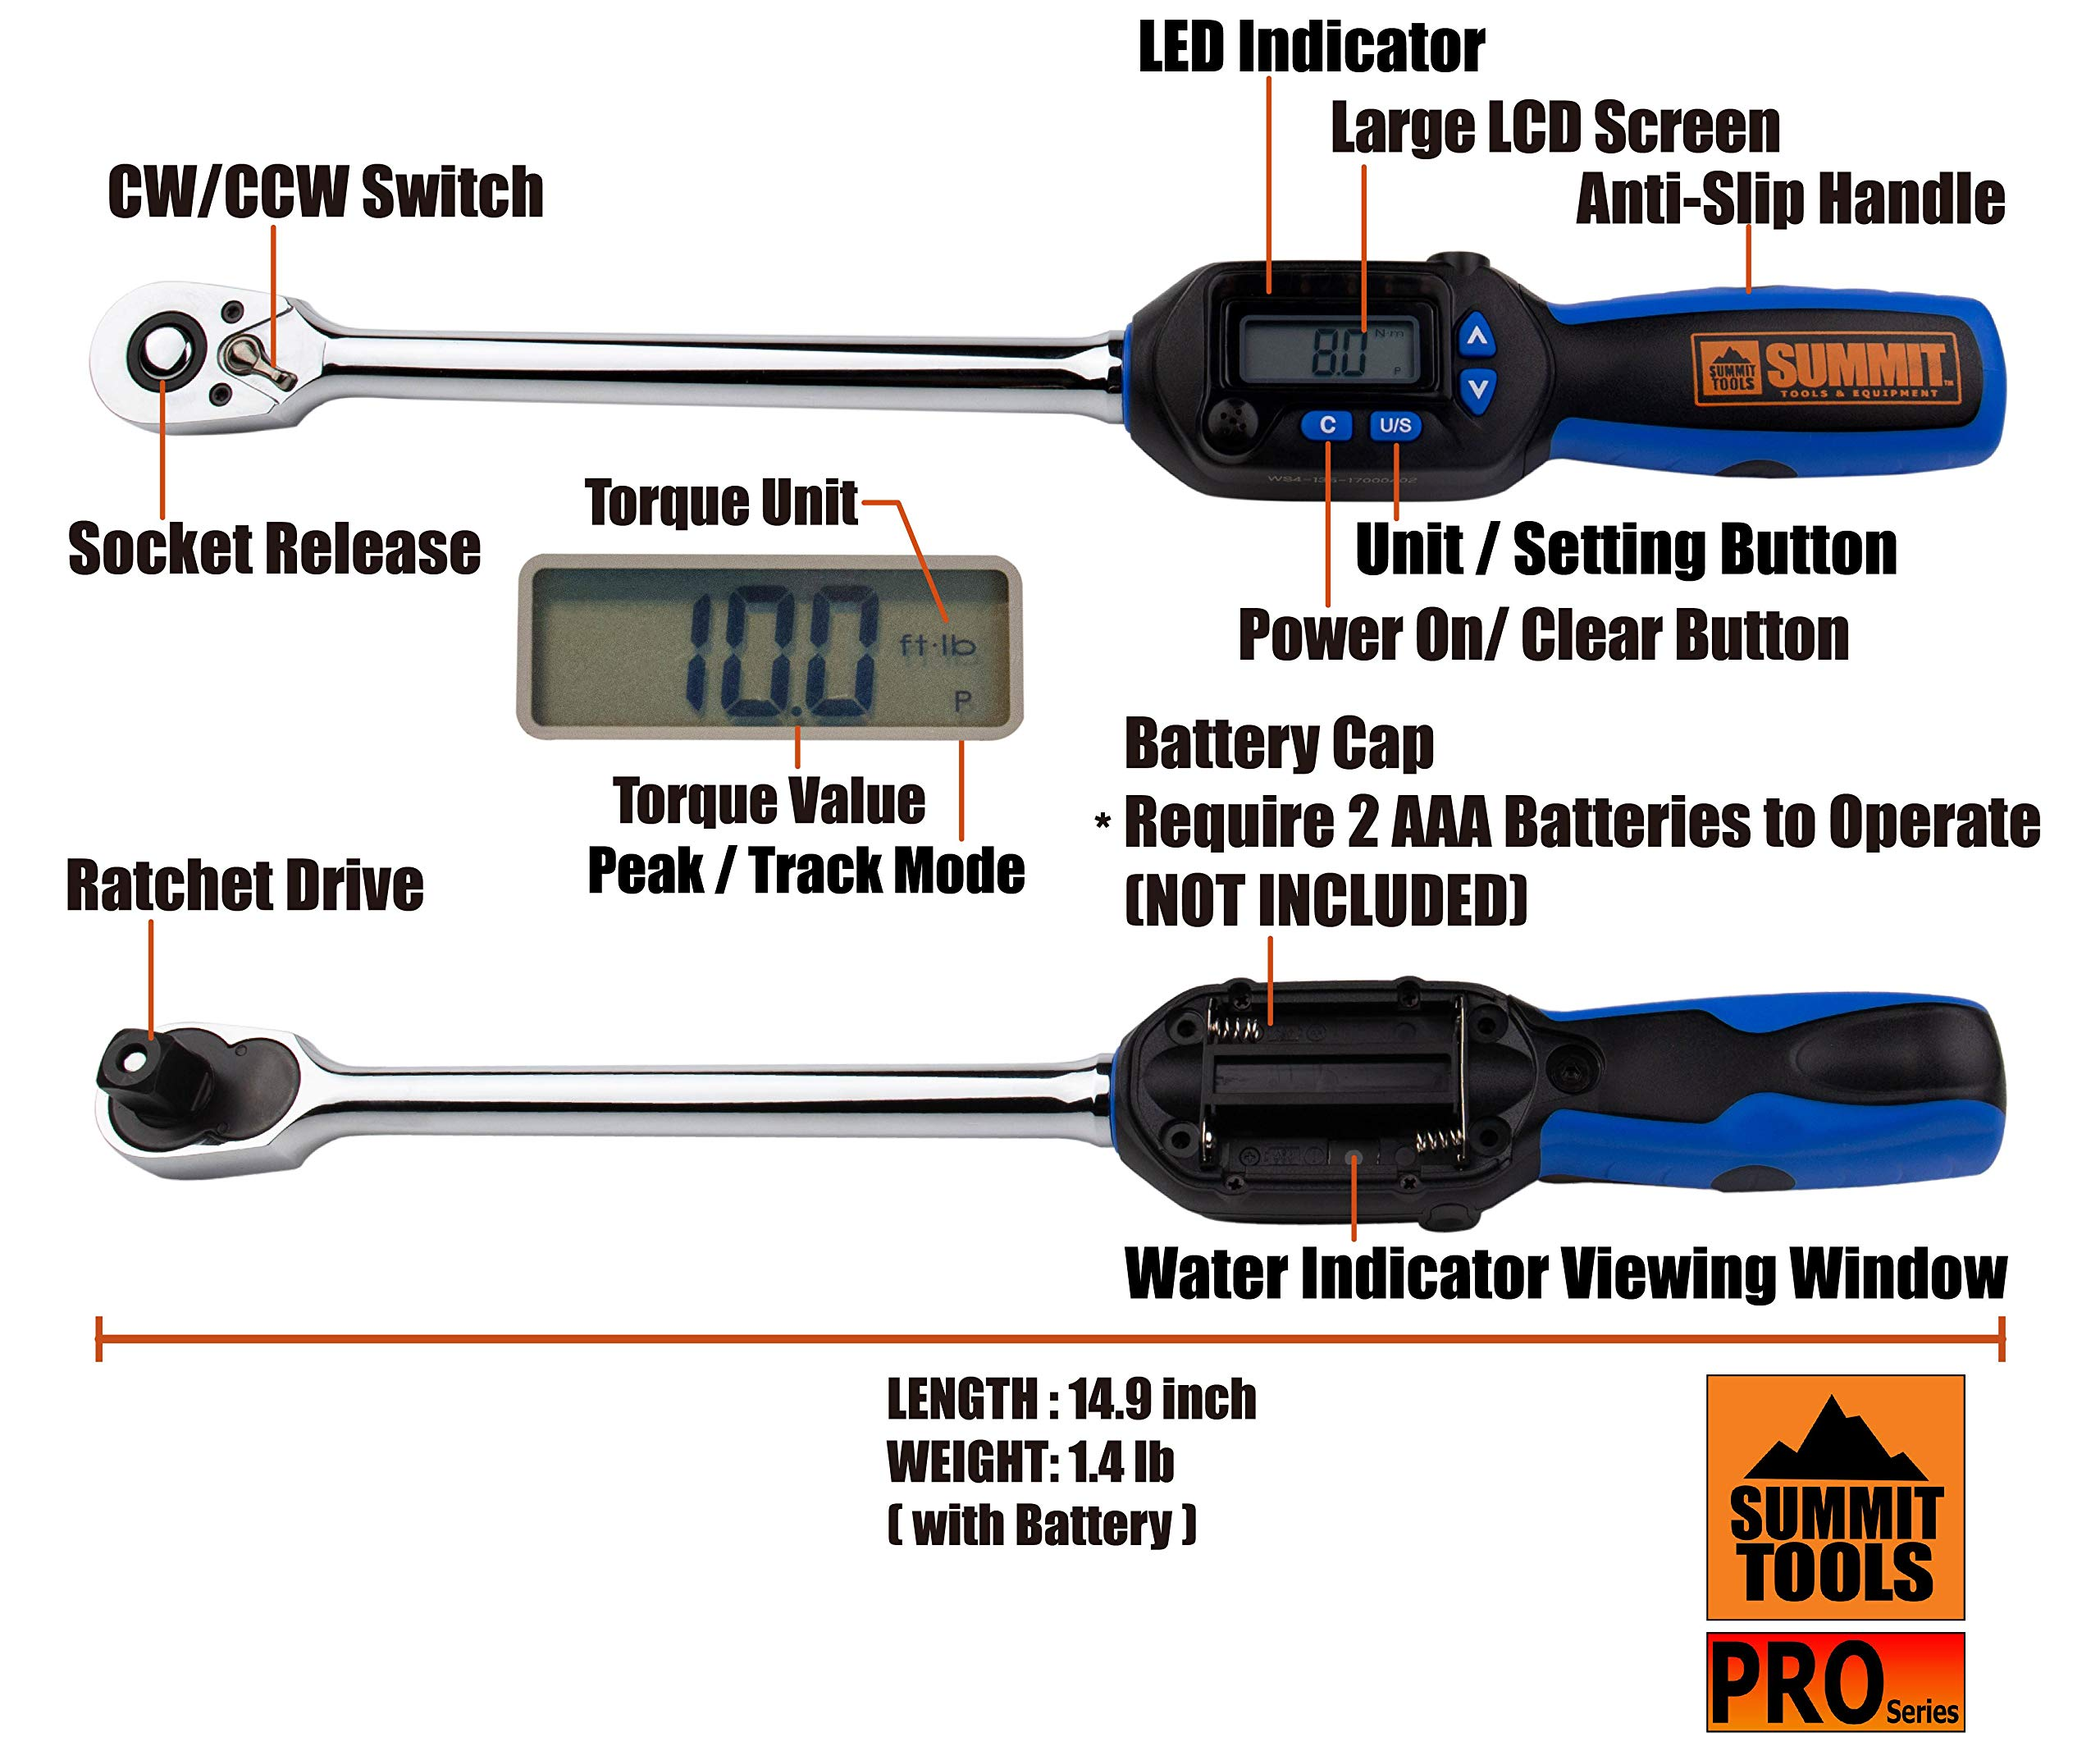 Summit Tools Digital Torque Wrench with 1/2-inch DR and 5-99.5 ft-lbs Torque Range, Buzzer and Sequential LED, 0.1 ft-lb Resolution with ±3% Tolerance, Certificate of Calibration (WSP4-135CN) by Summit Tools (Image #3)